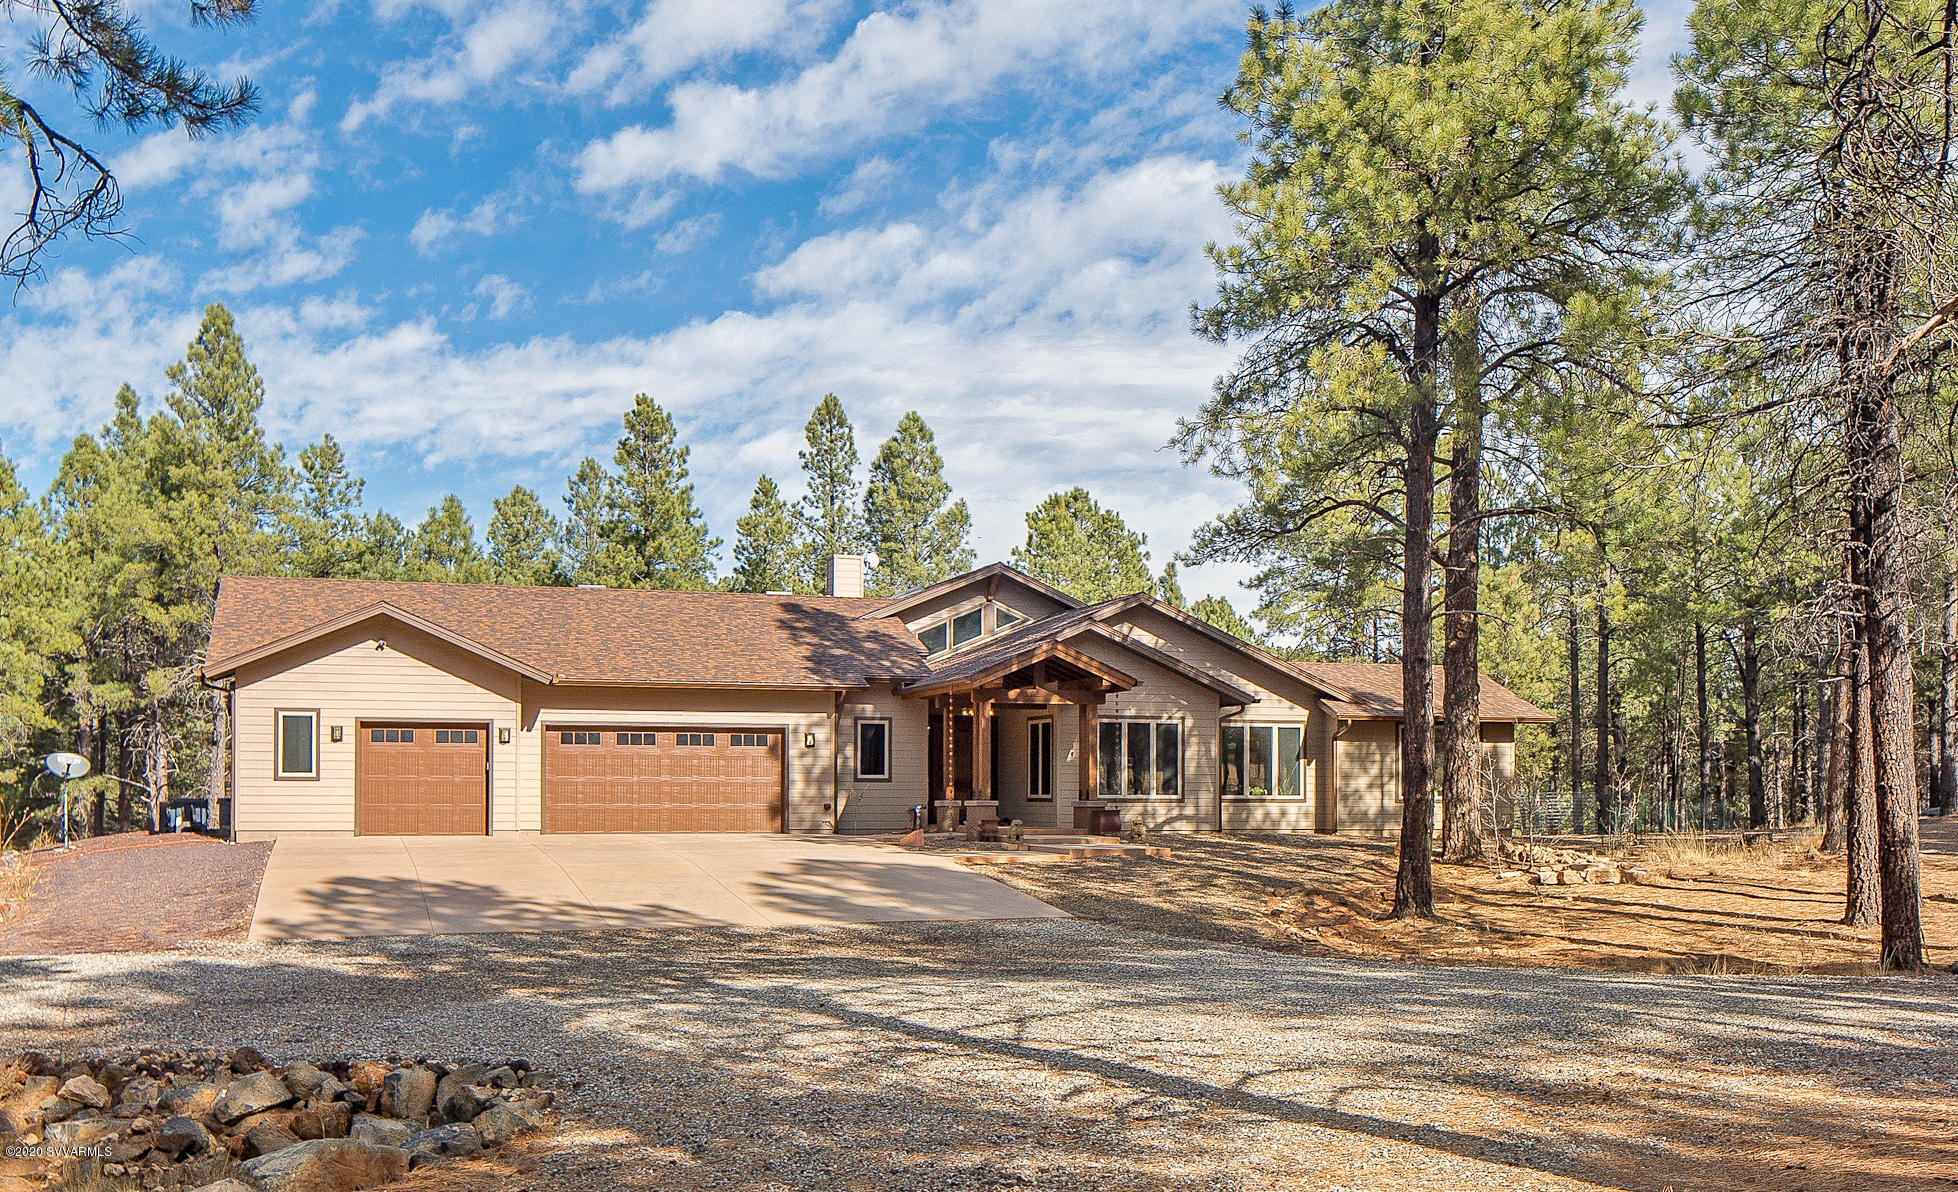 2274 Constitution Blvd Flagstaff, AZ 86001